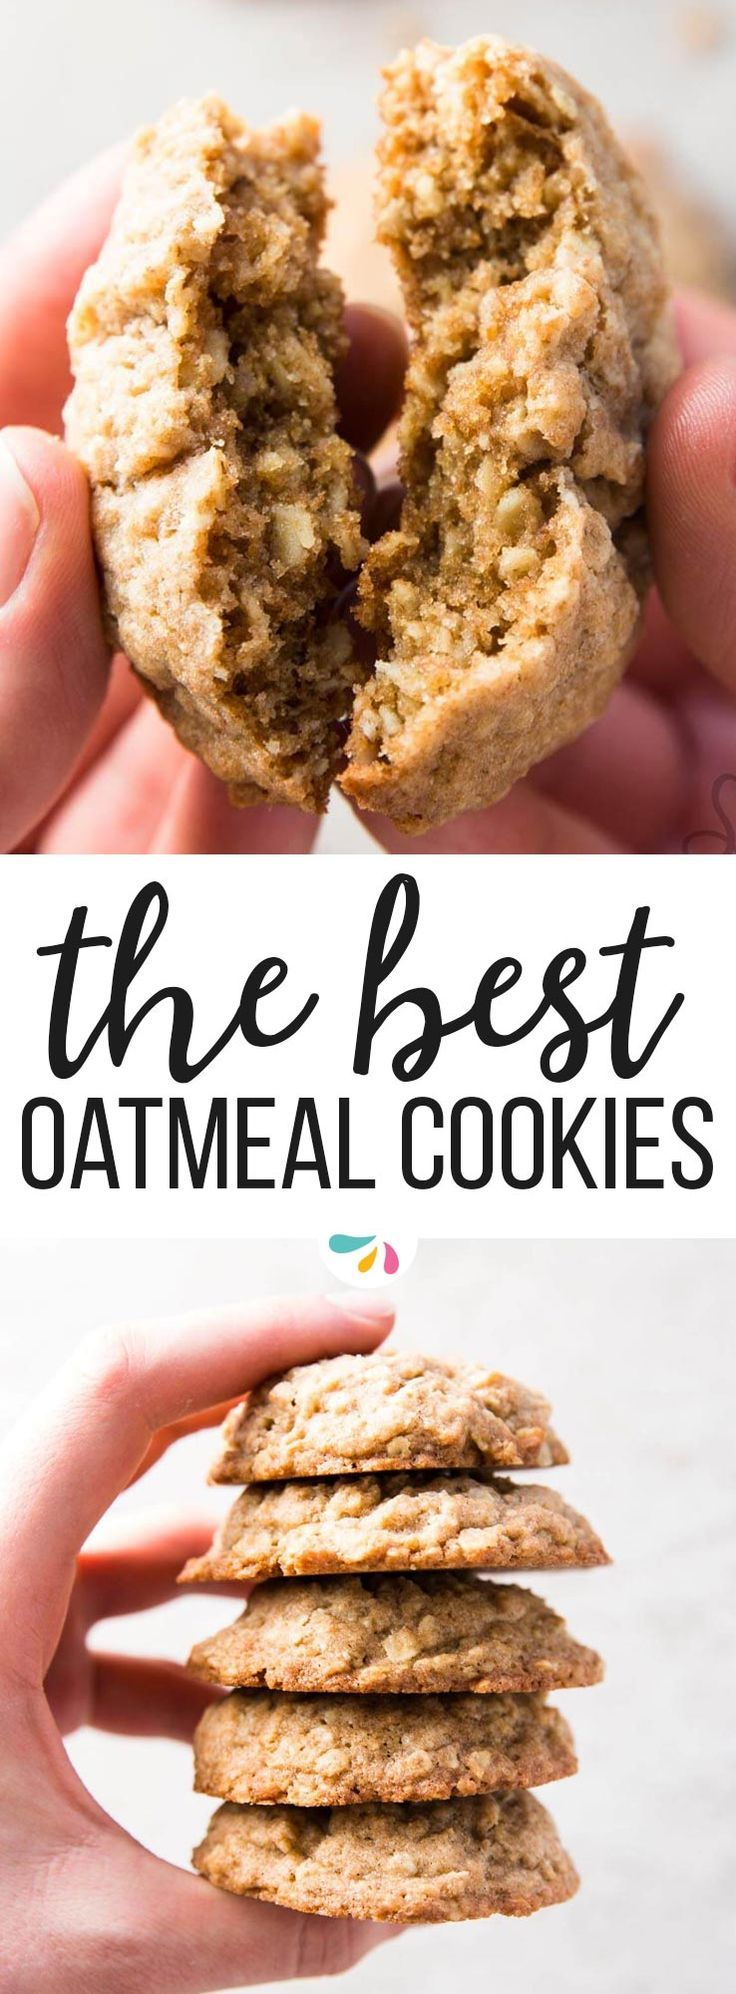 Learn how to make basic oatmeal cookies, completely from scratch! This tutorial will teach you how to make homemade one. This is a recipe for basic soft baked cookies, you can customize them with chocolate chips, raisins, cranberries or any way you like. Simple, easy instructions for homemade cookies! Made with just a handful of simple ingredients, like oats, whole wheat flour, butter and brown sugar. You can bake them straight away, or freeze the cookie dough.   #recipes #baking #cookies